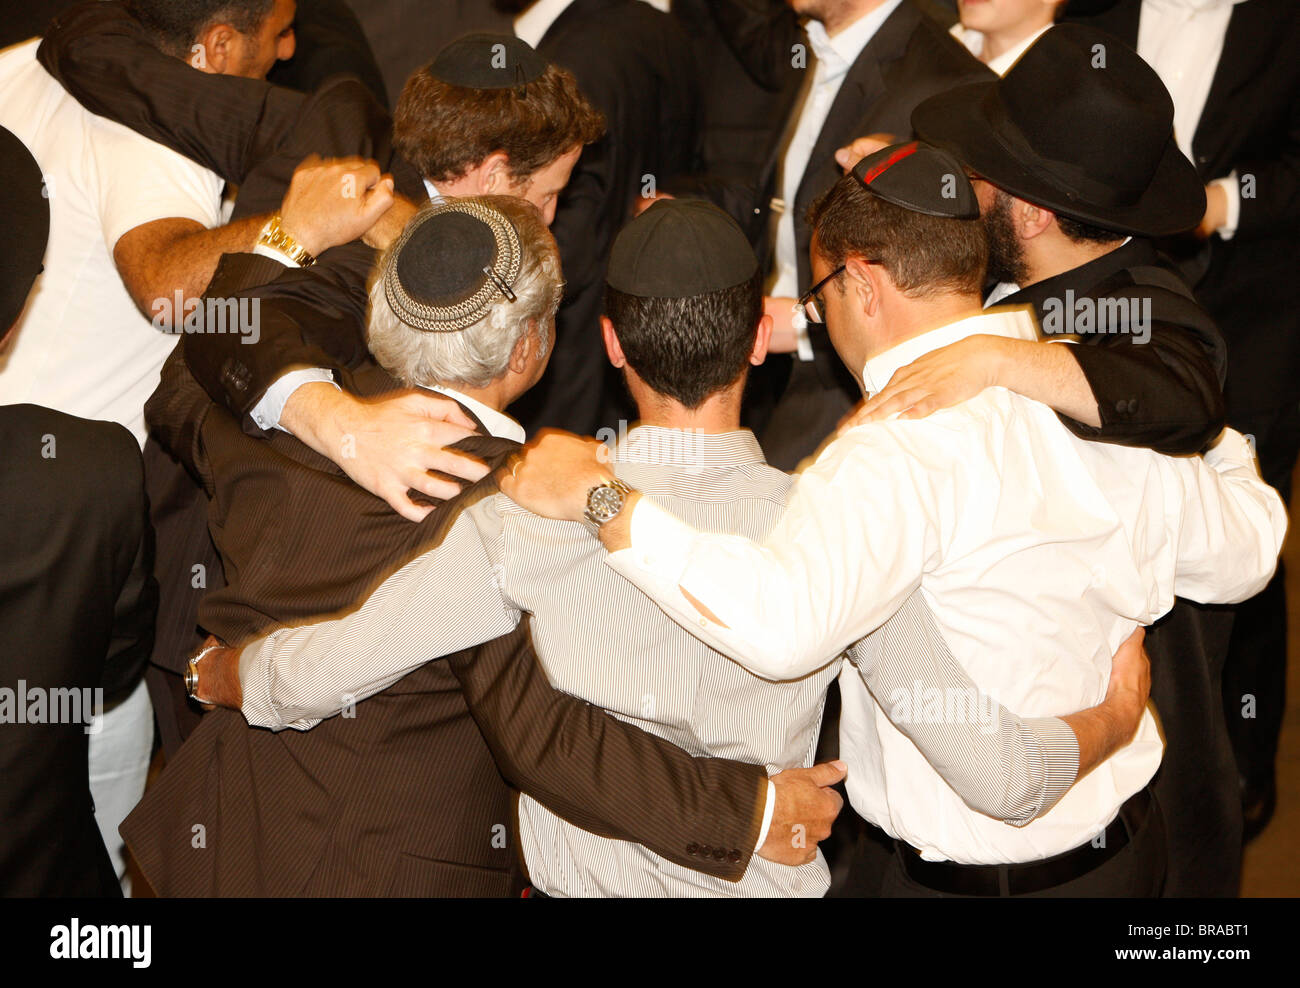 Chabad (Lubavitch) Bar Mitzvah party, Paris, France, Europe - Stock Image